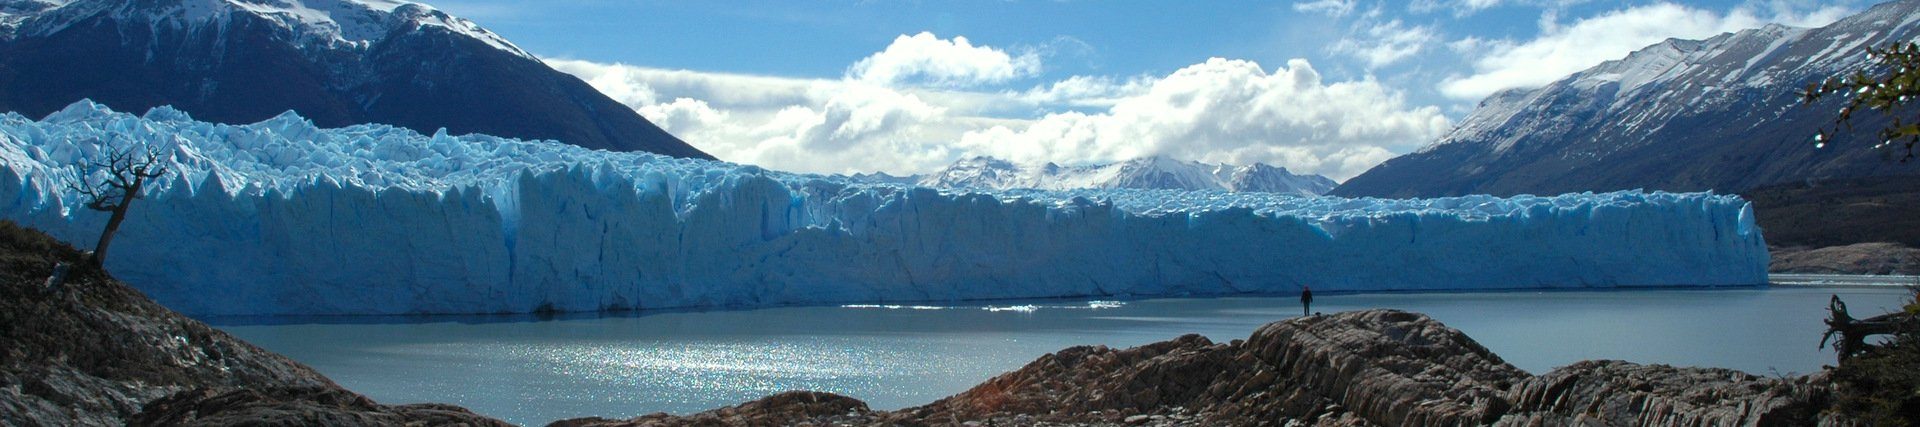 Perito Moreno Day Tour